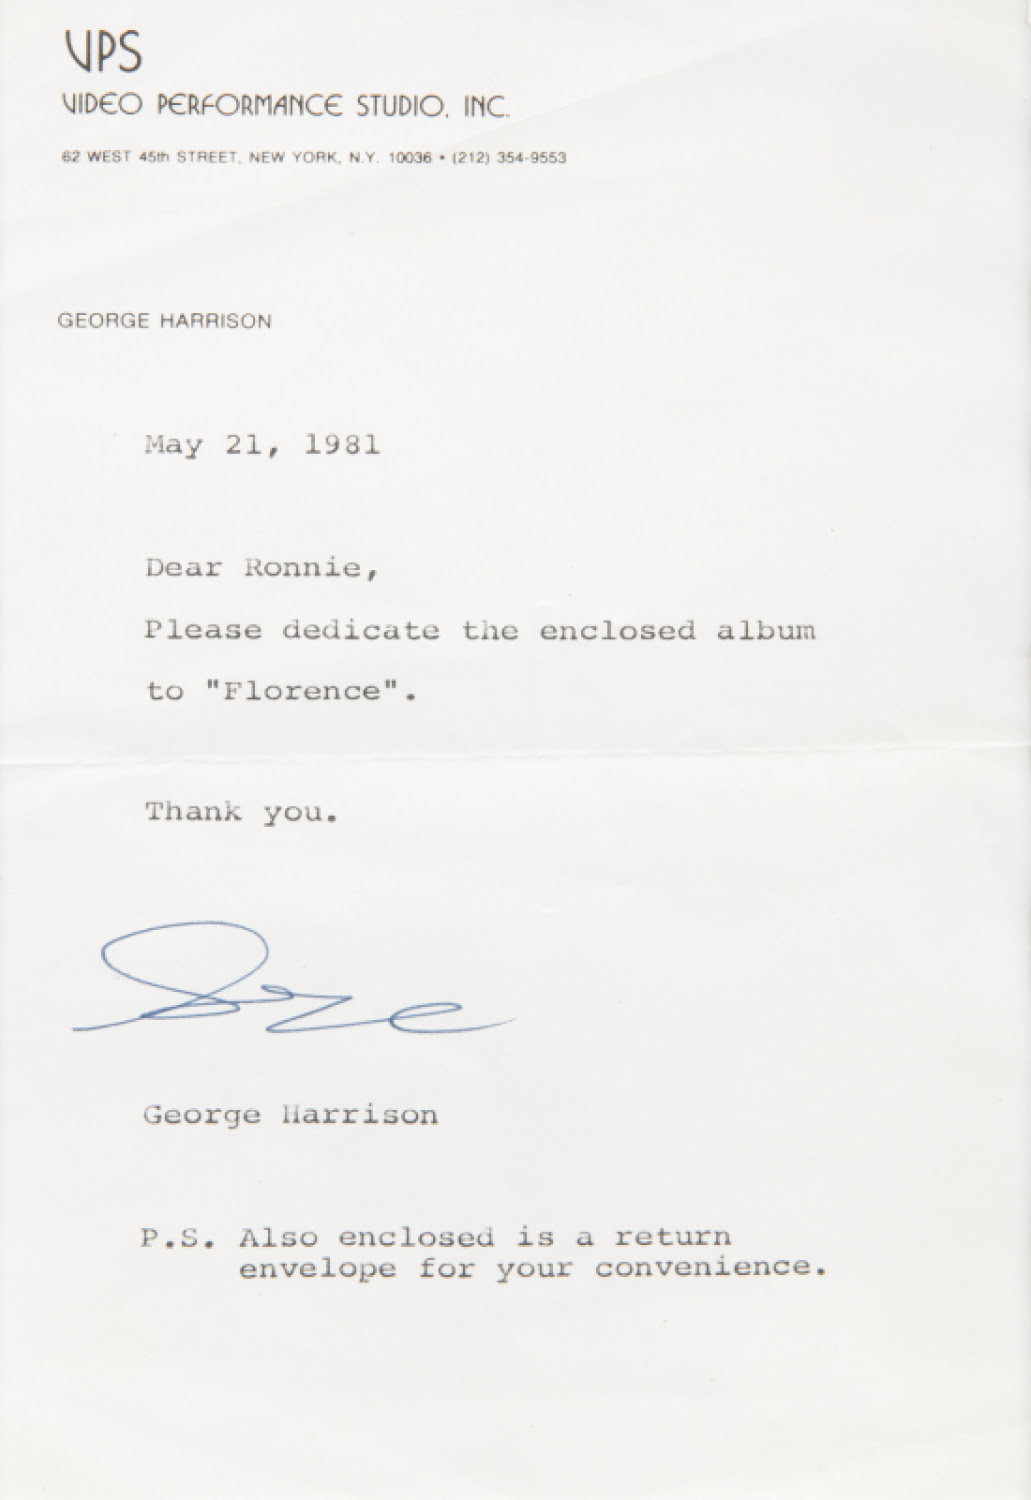 GEORGE HARRISON LETTER TO RONNIE JAMES DIO